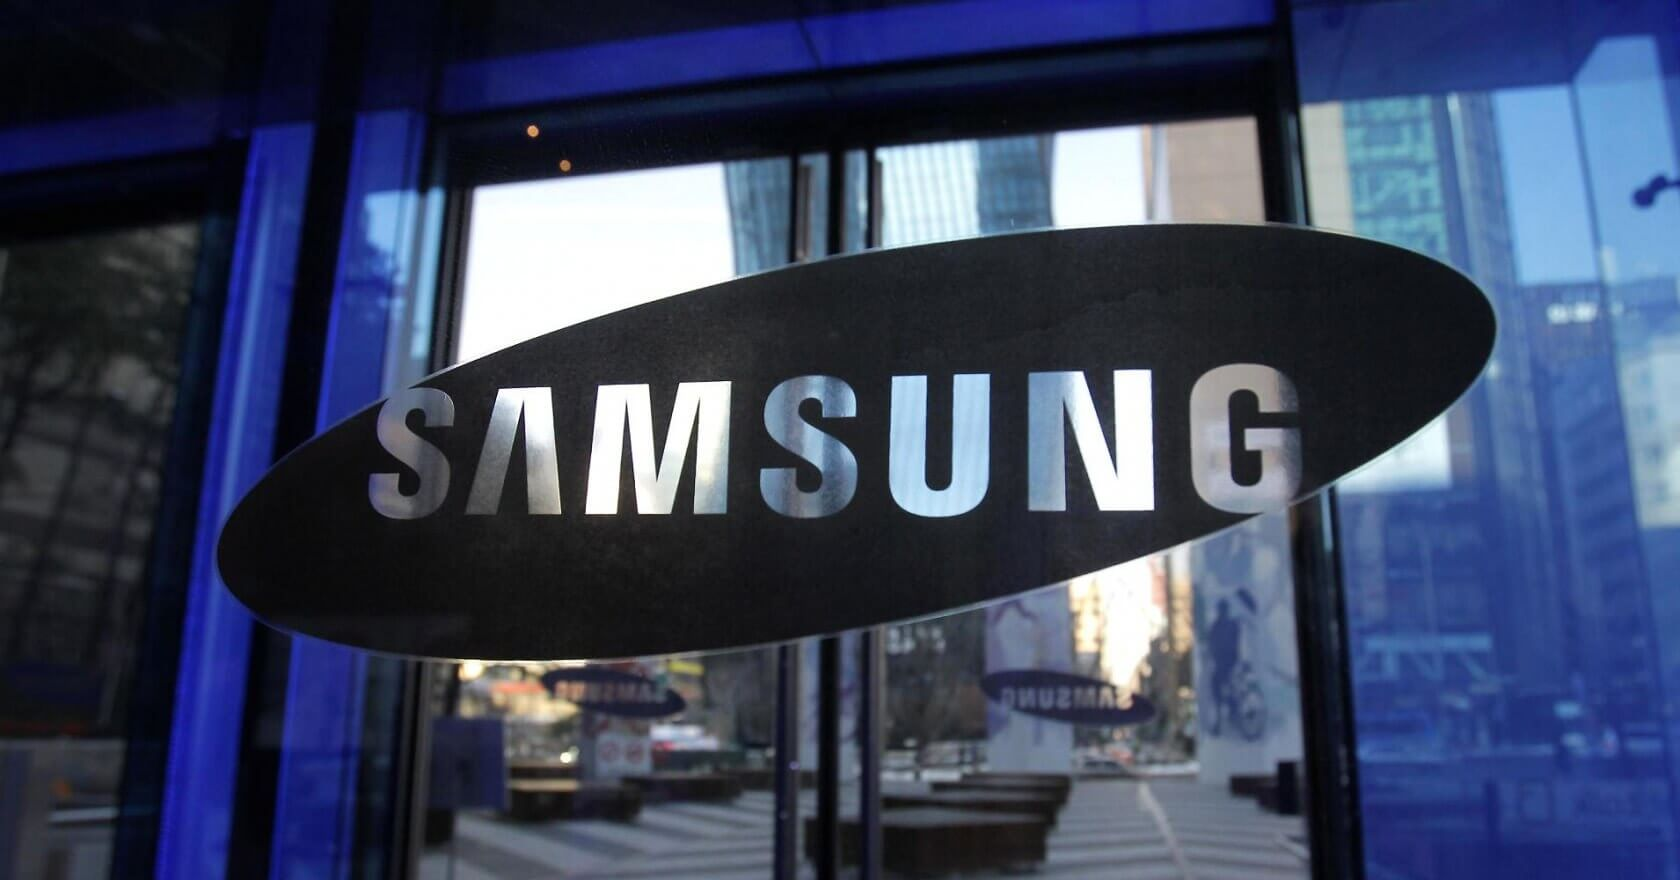 Samsung's New Phone Has FOUR Rear Cameras, Says Leak